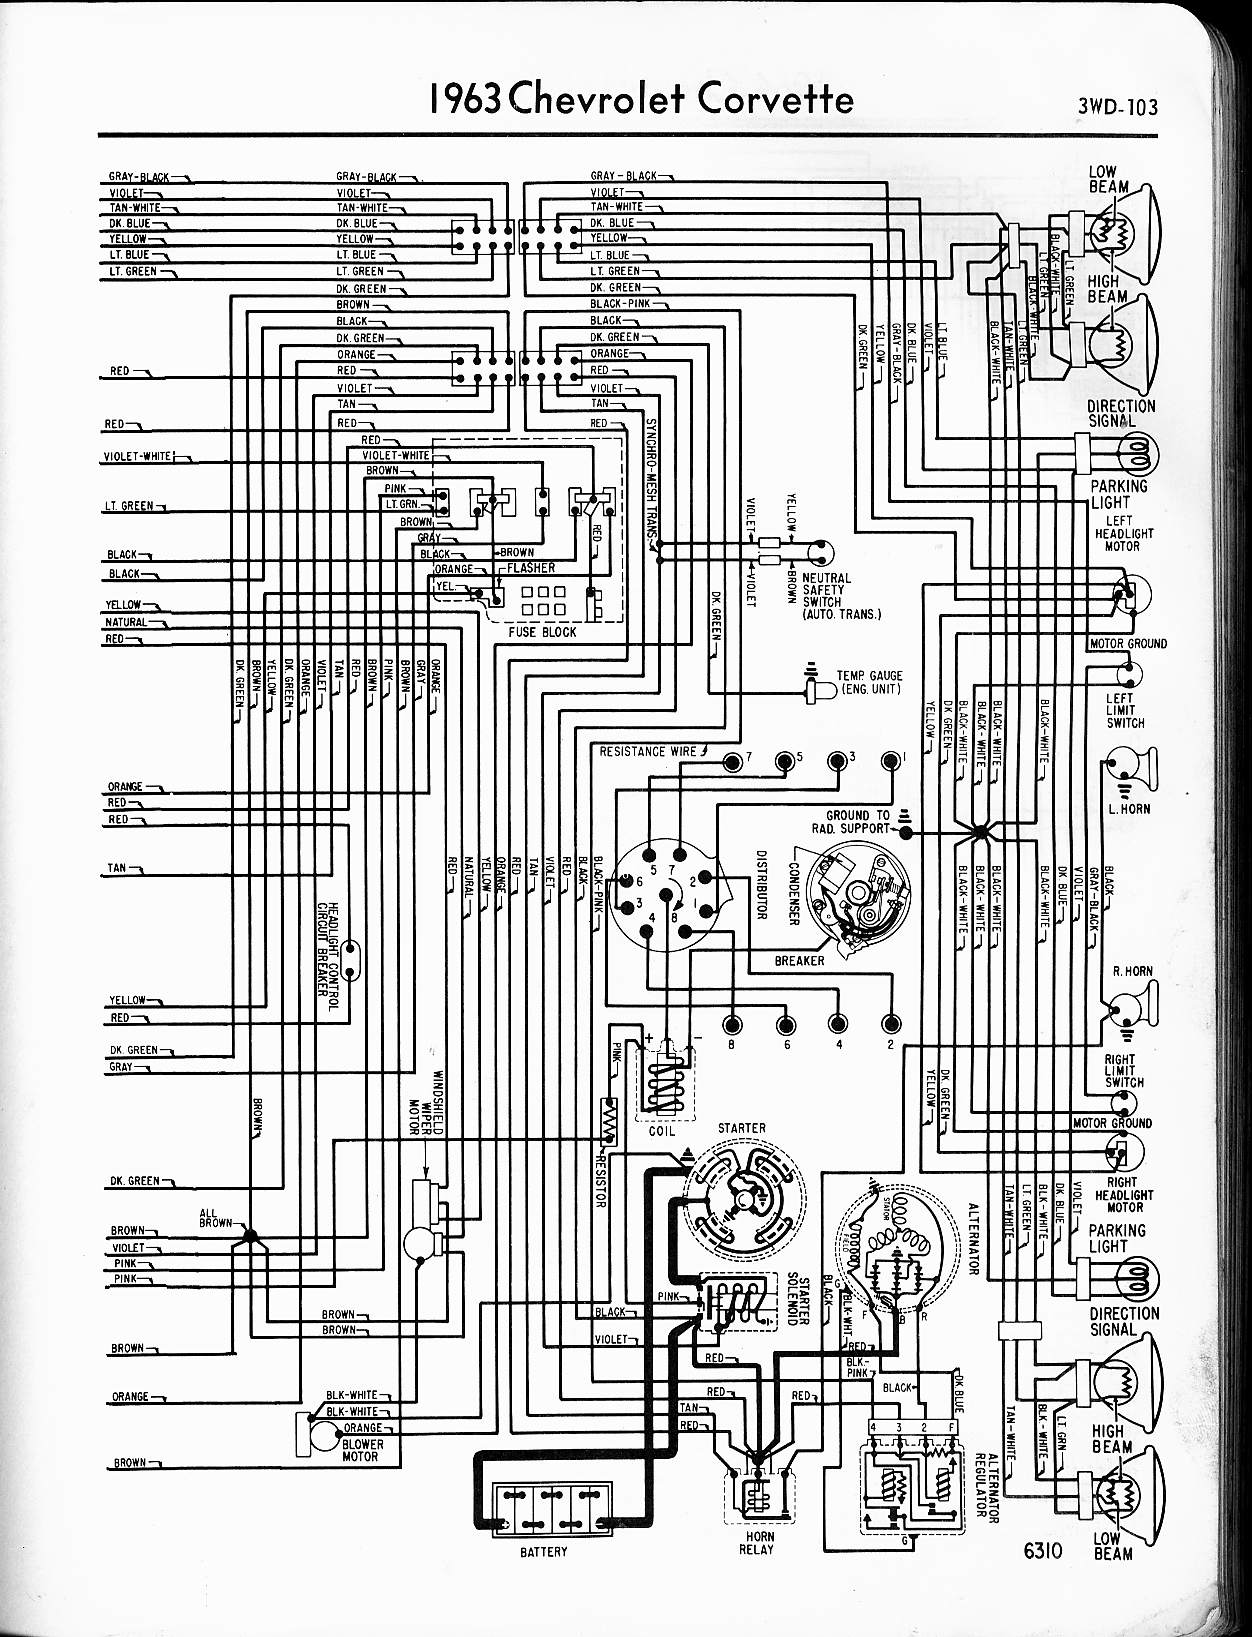 MWireChev63_3WD 103 57 65 chevy wiring diagrams 66 Corvette at creativeand.co